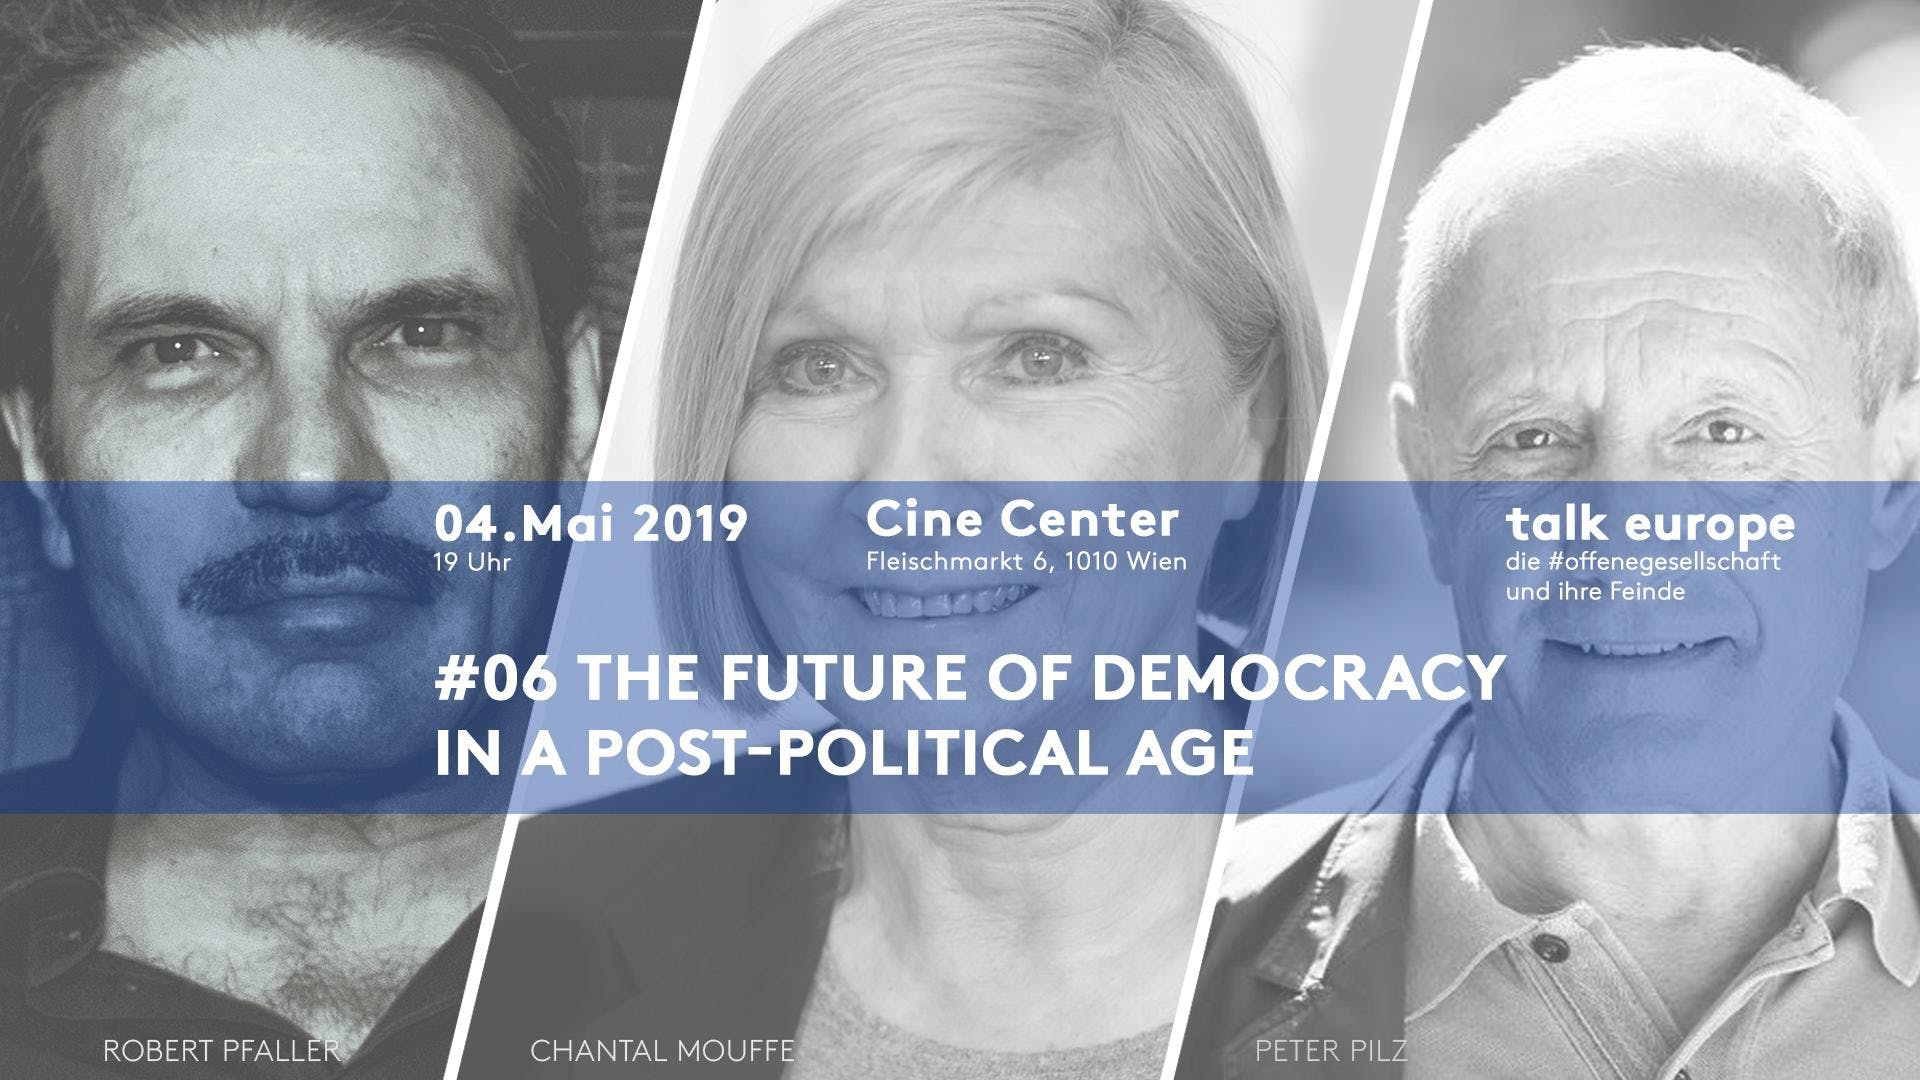 The future of democracy in a post-political age